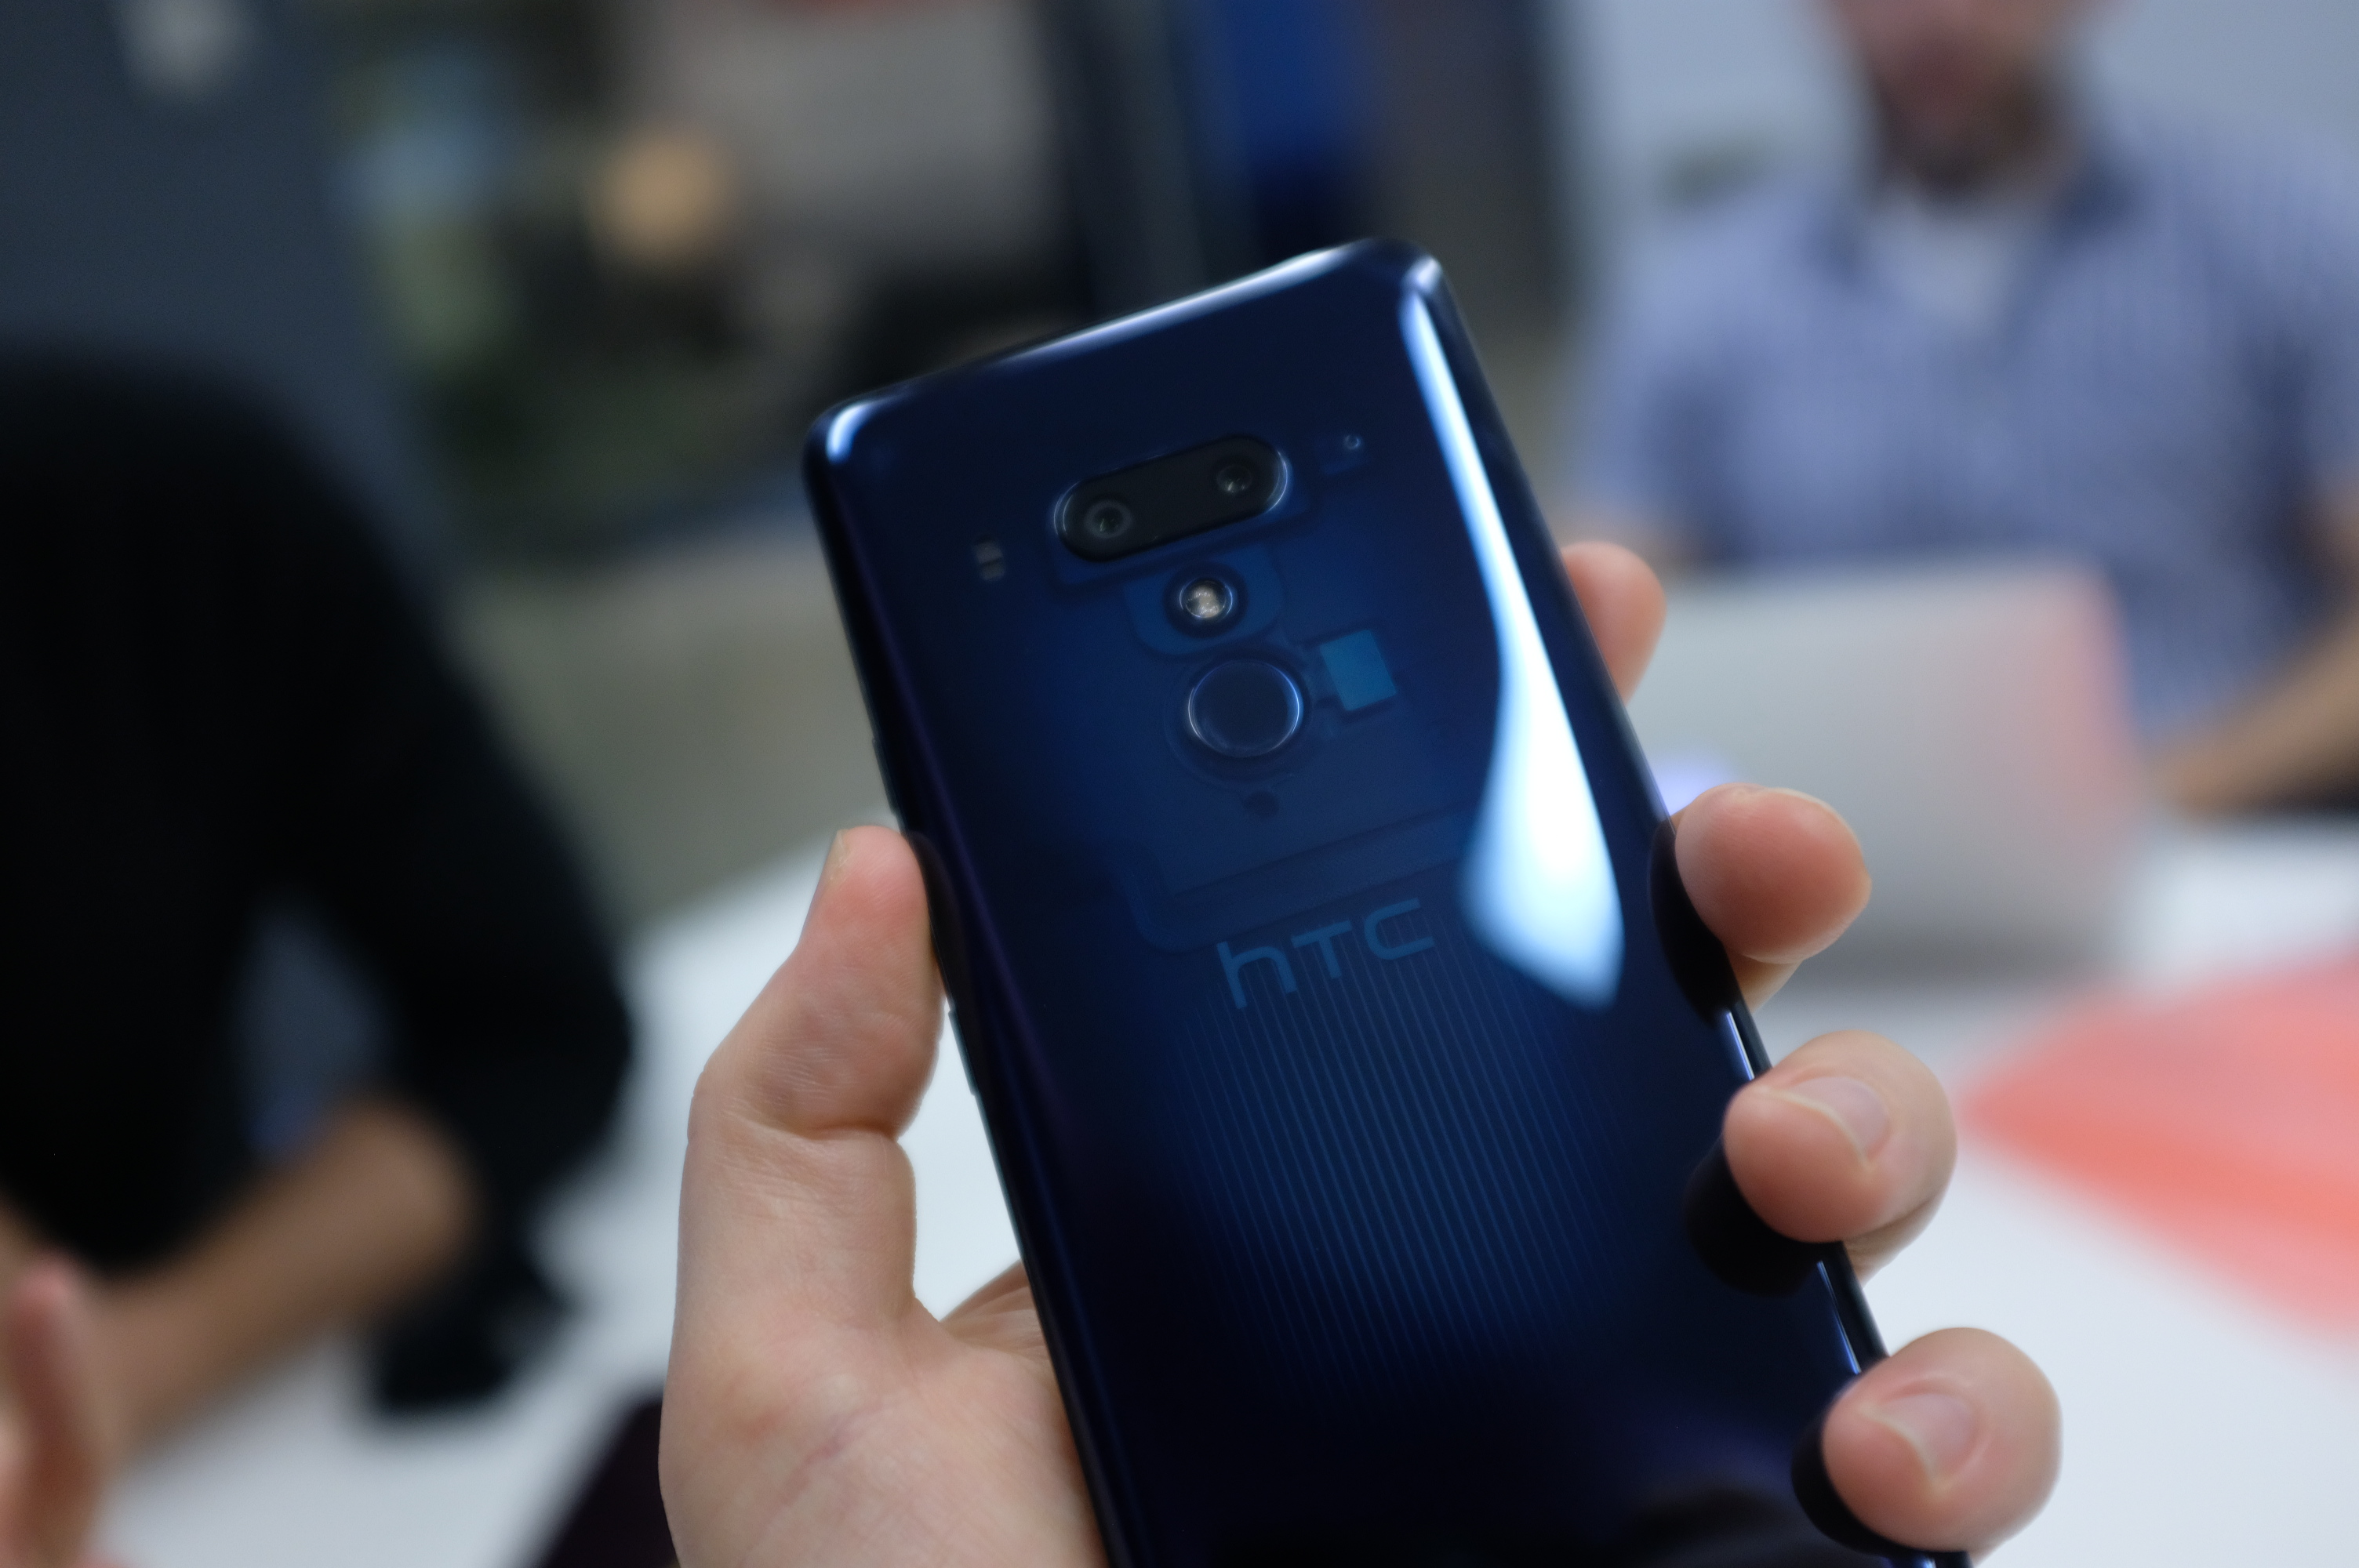 Edge Sense is starting to come into its own with HTC's U12+